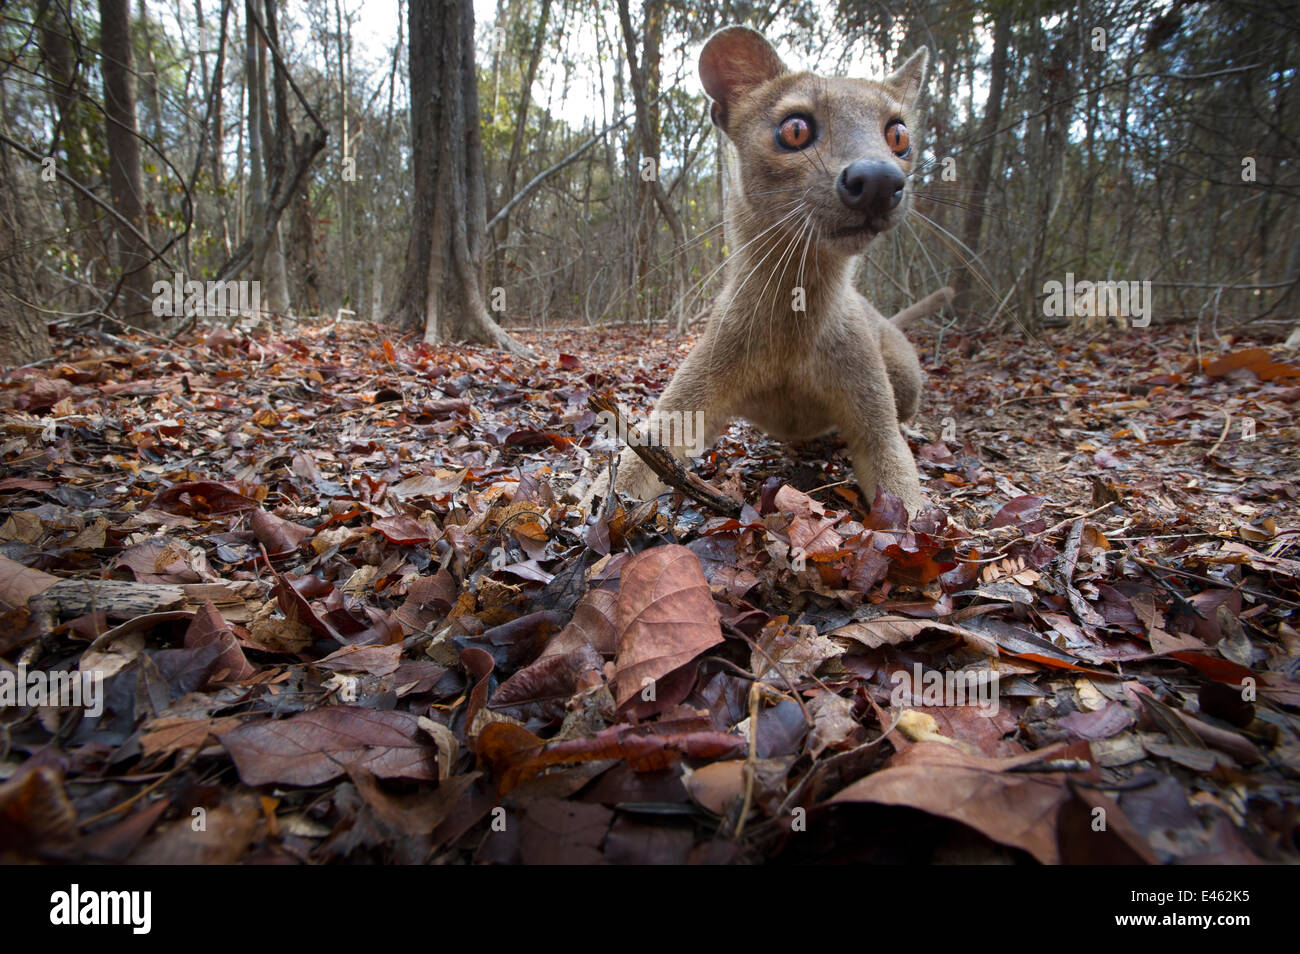 Adult Fossa (Crytoprocta ferox) female investigating automatic remote camera in leaf-litter. Kirindy Forest, western - Stock Image